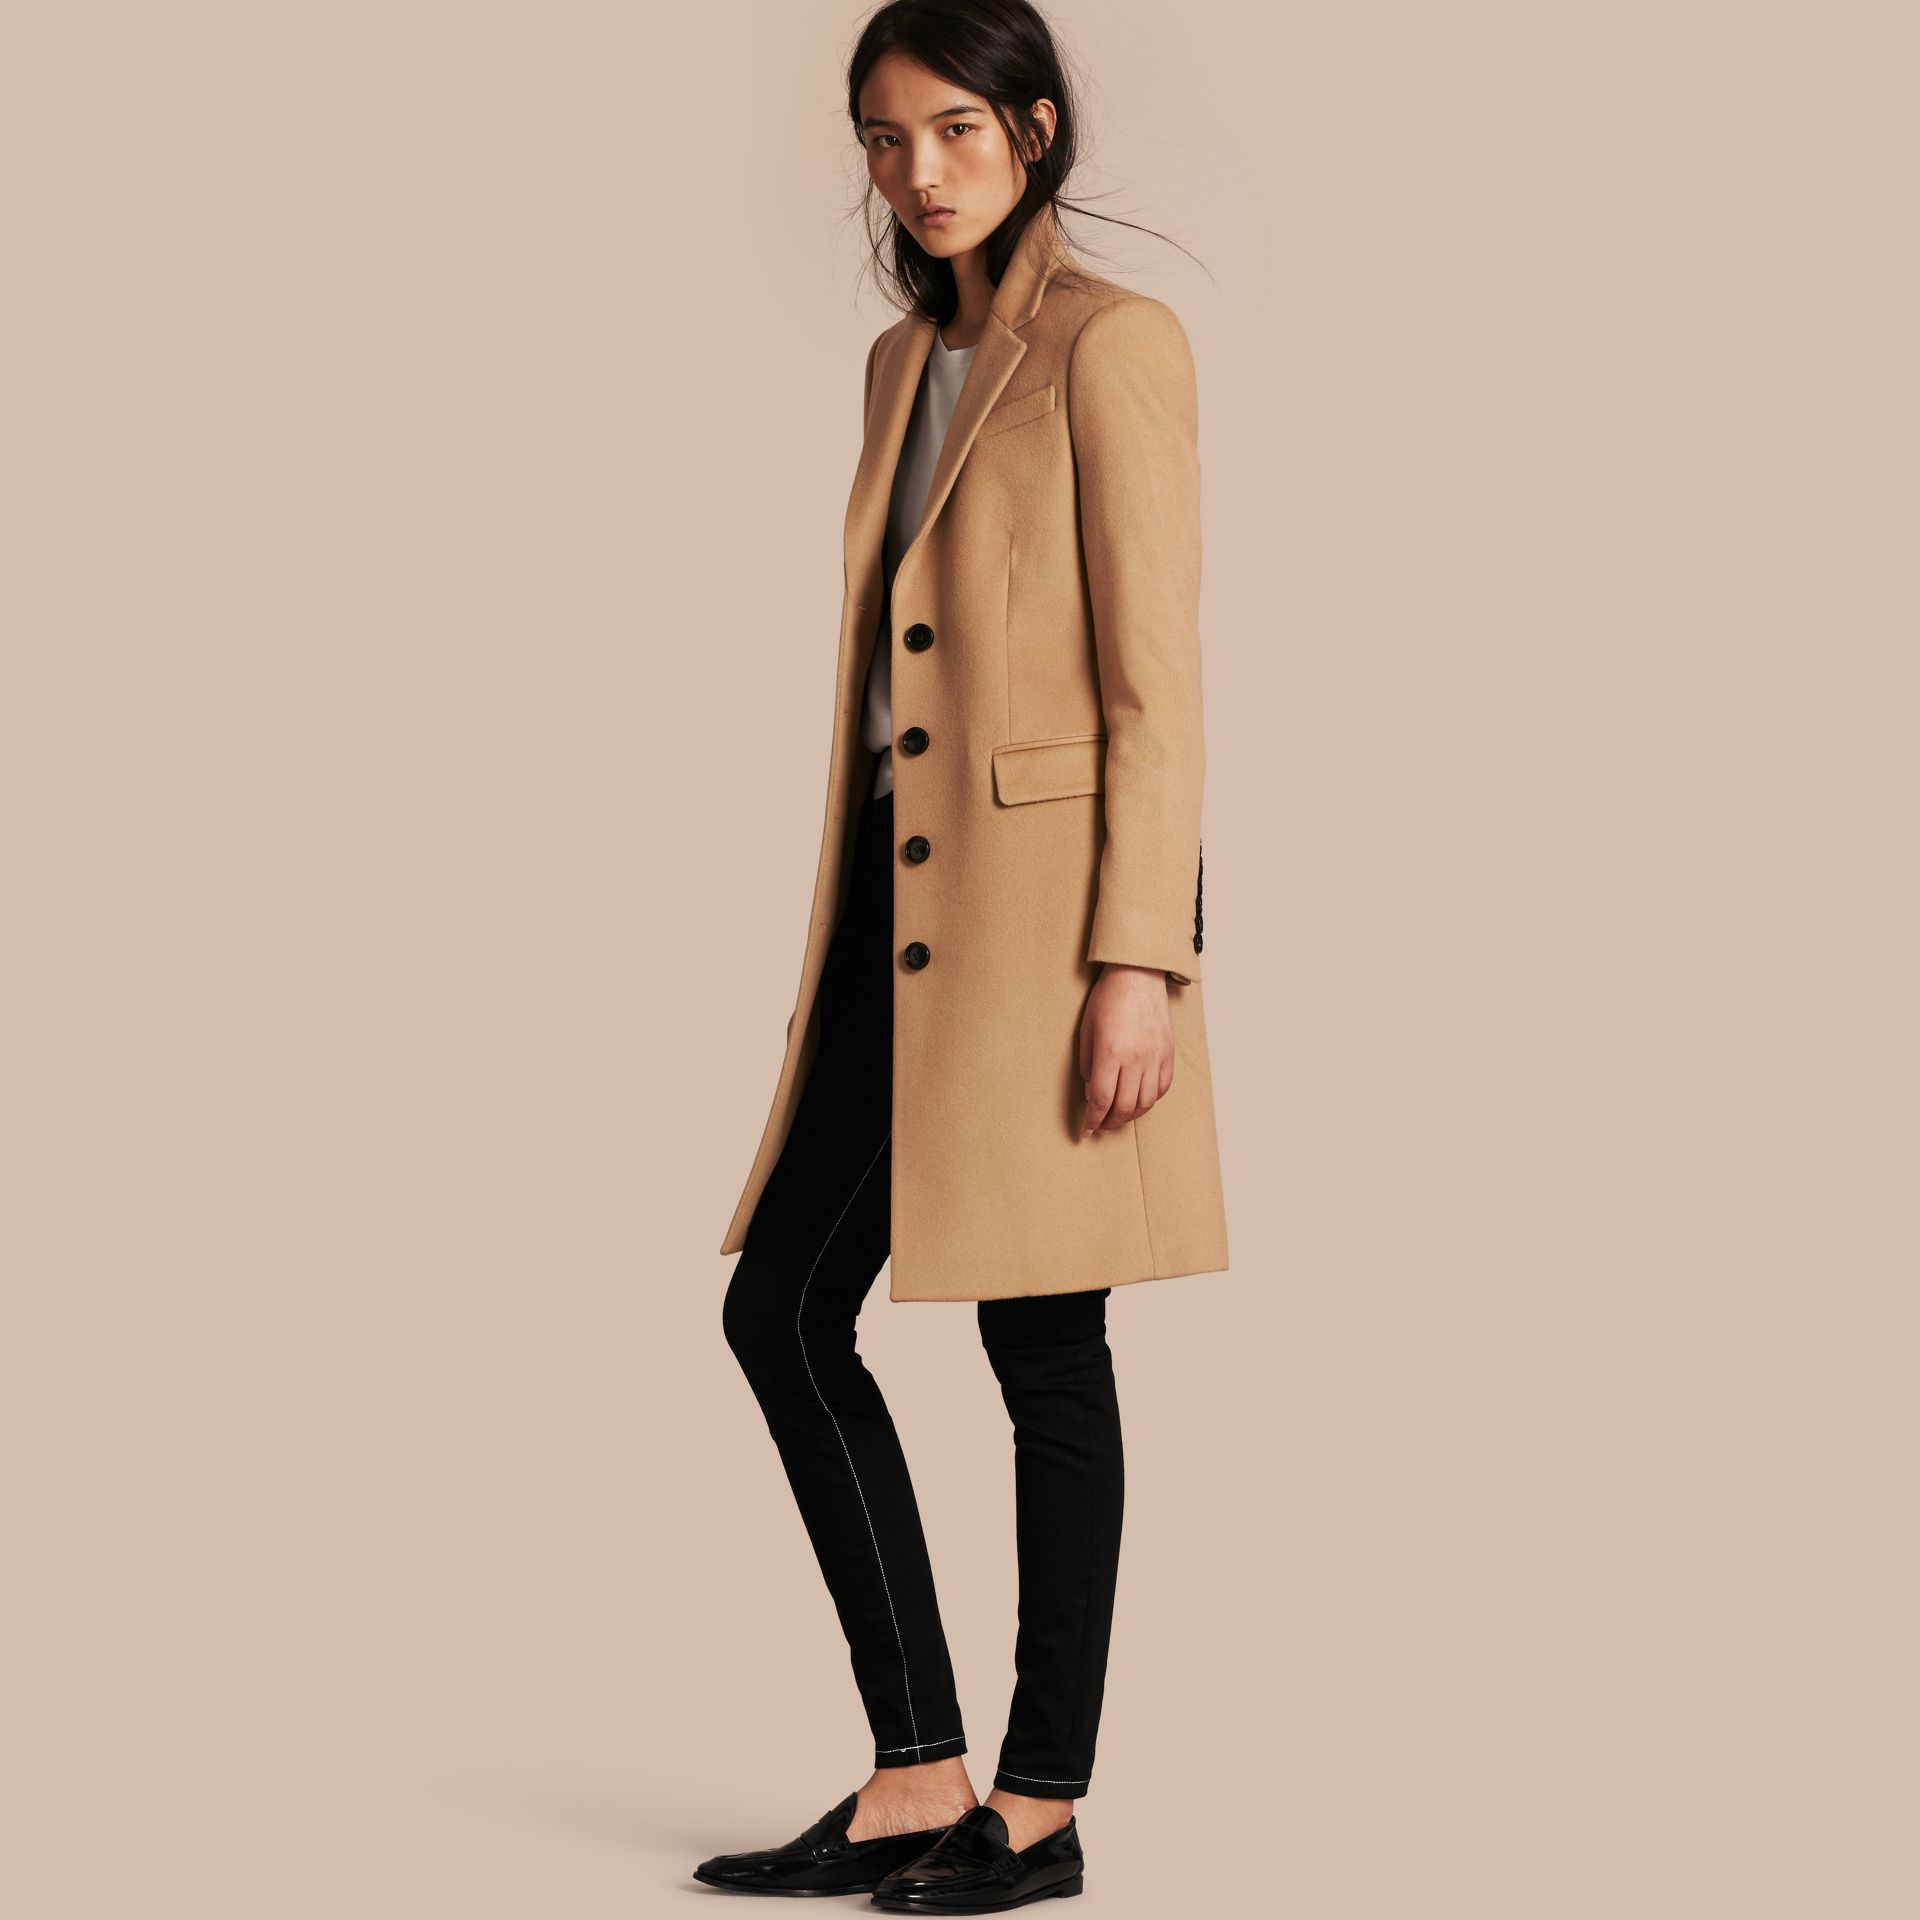 Camel Tailored Wool Cashmere Coat Camel - gallery image 1